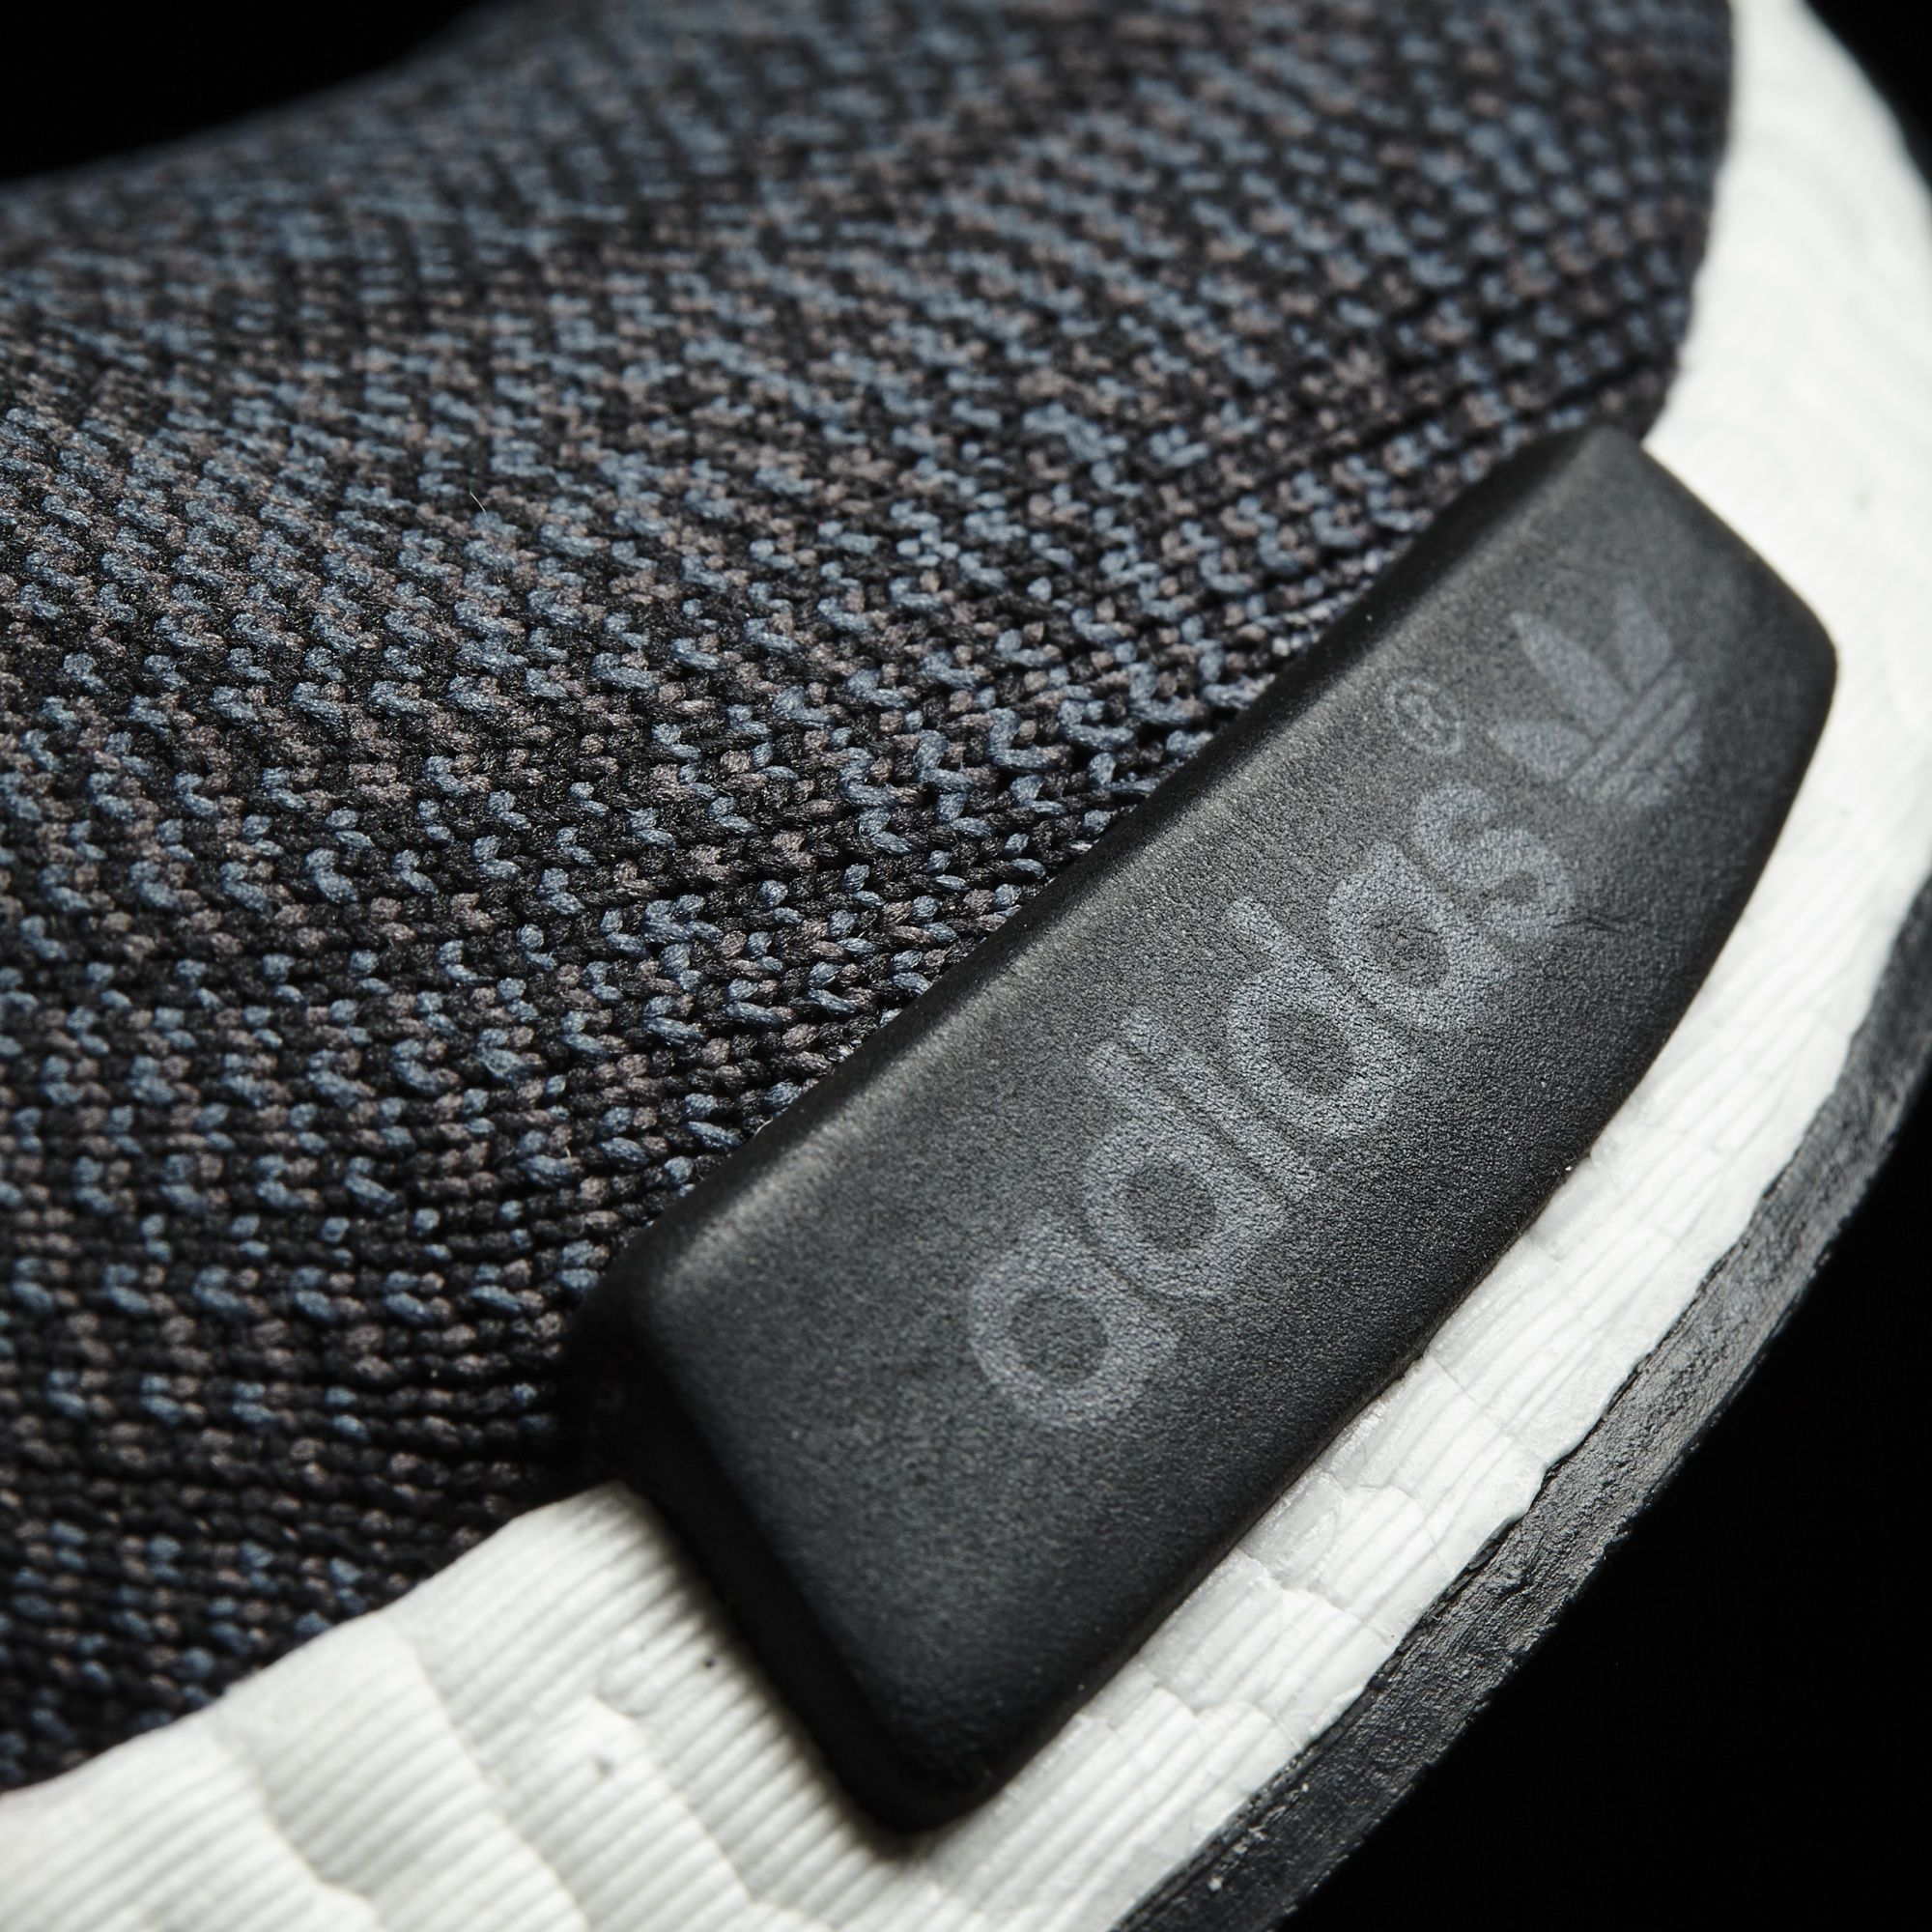 adidas-nmd-pk-black-red-white-blue-stripes-6_in1jrd